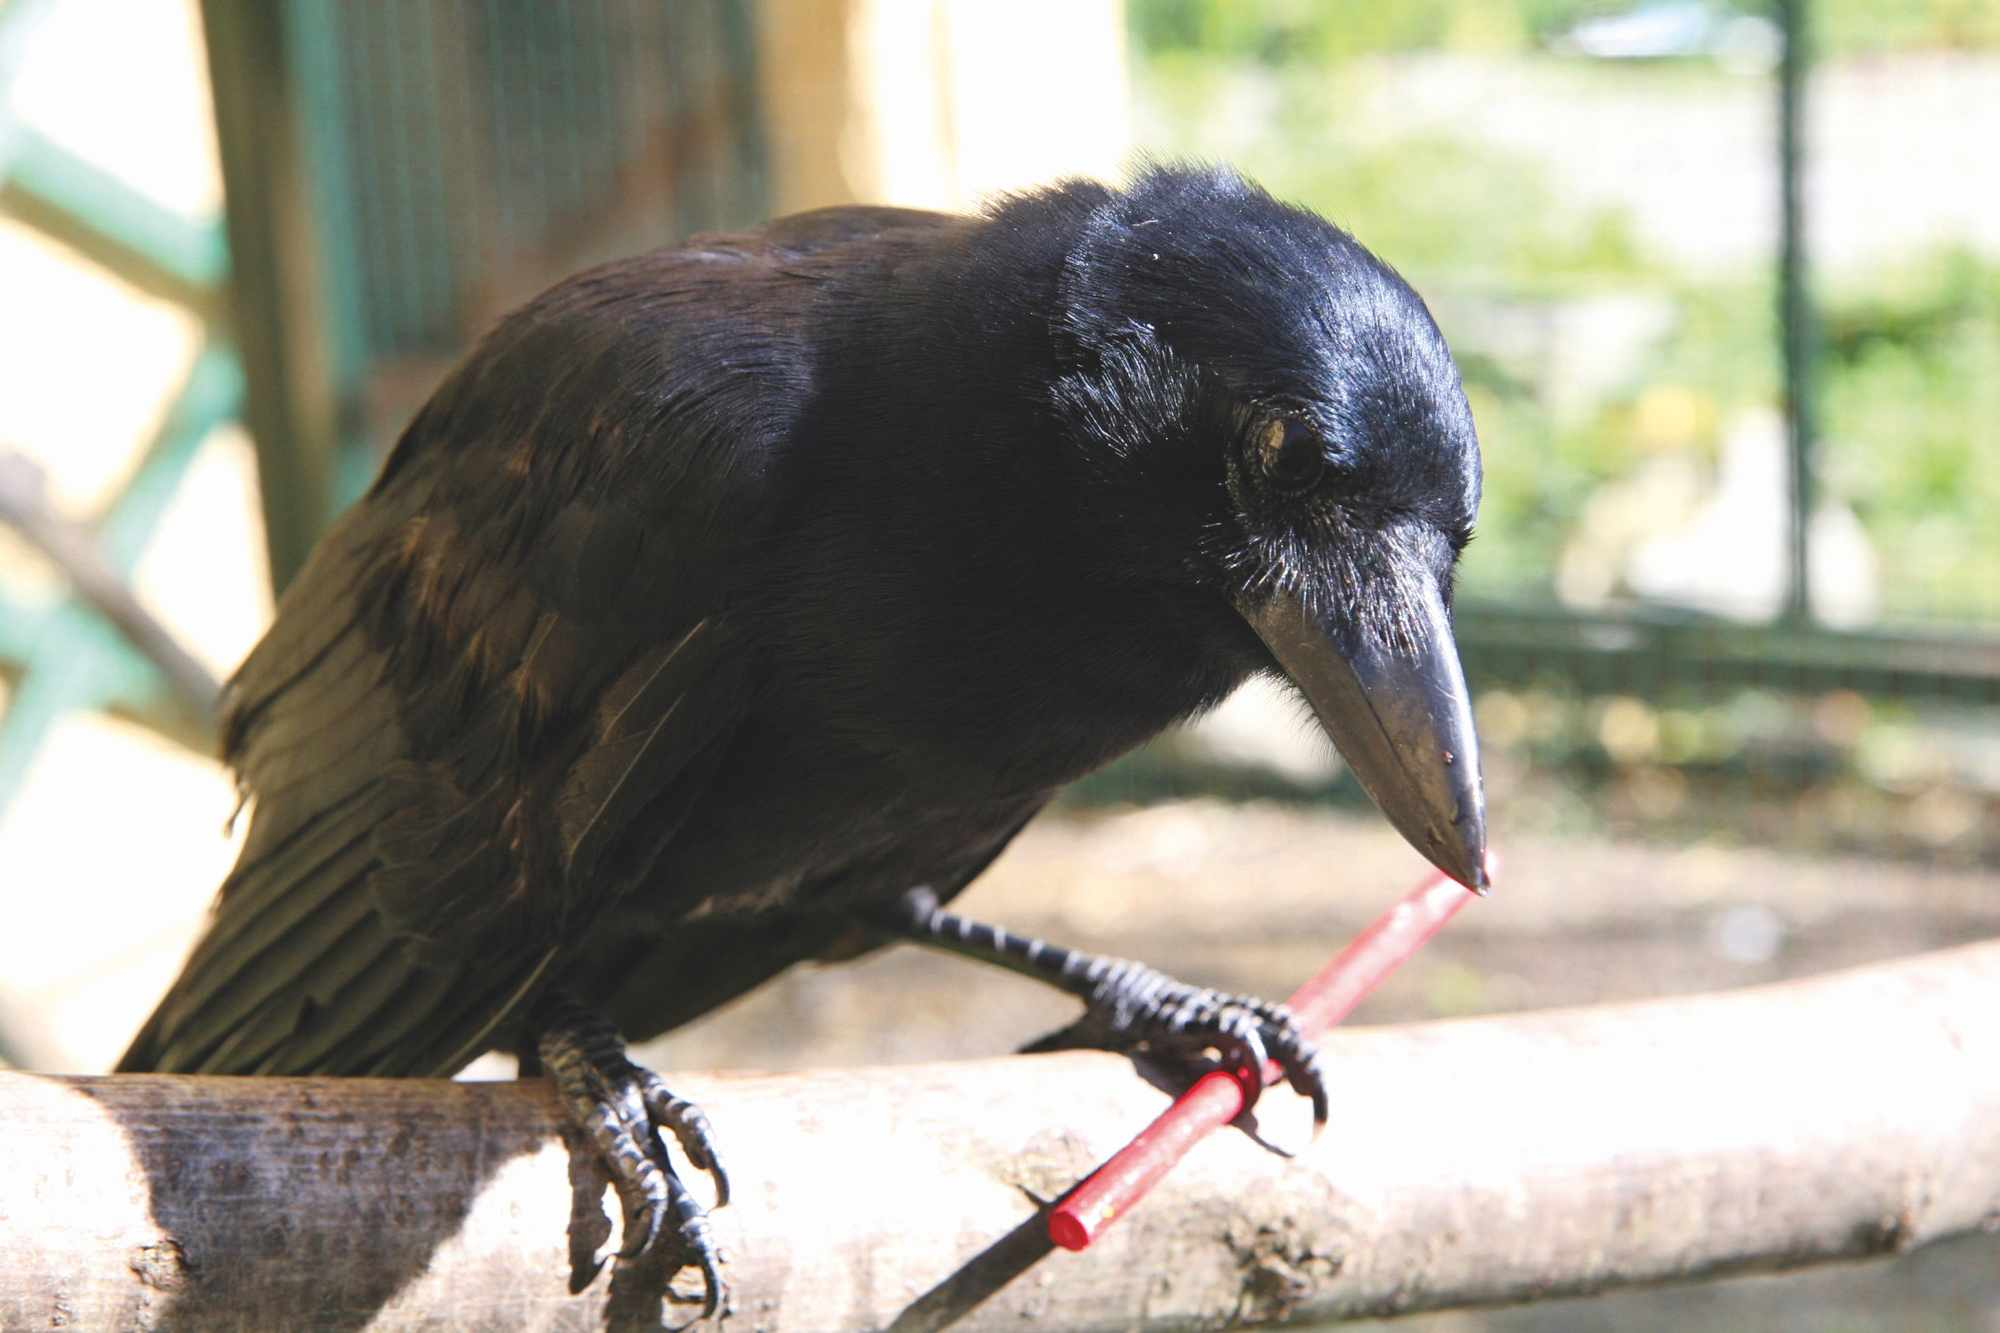 A New Caledonian crow with a stick tool. ©Auguste von Bayern